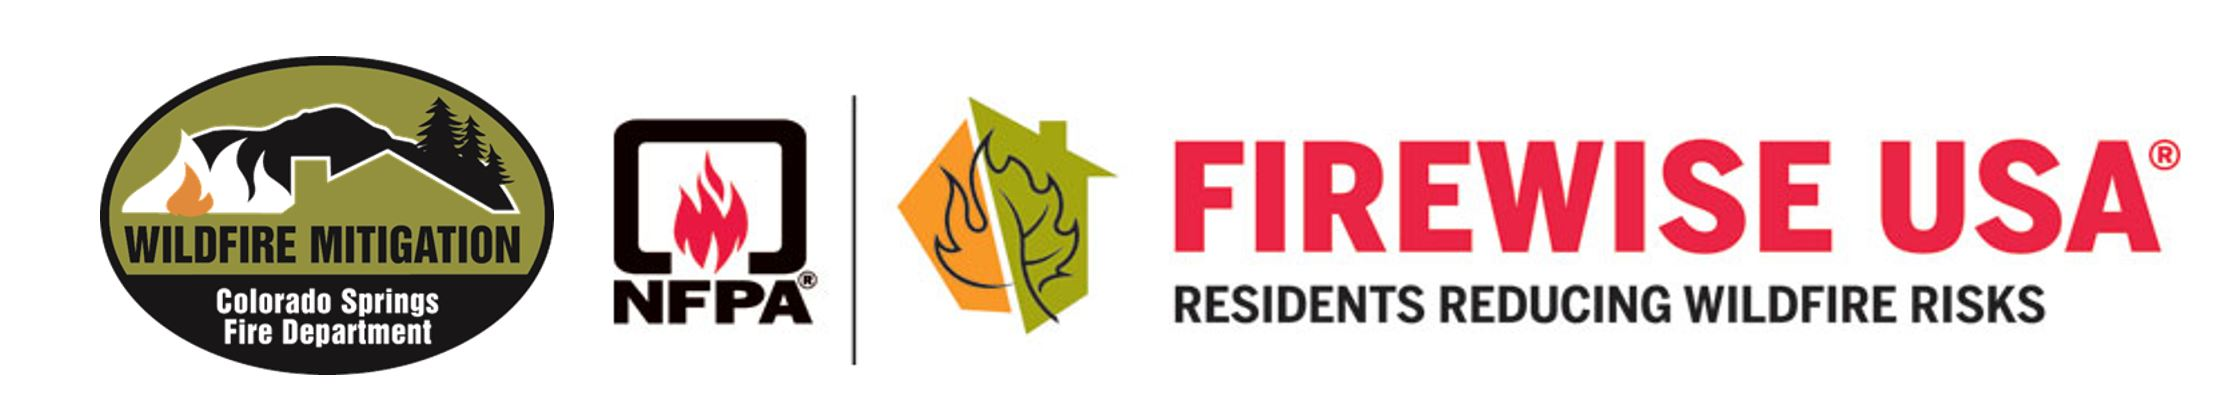 CSFD Wildfire MItigation and NFPA Firewise USA logos